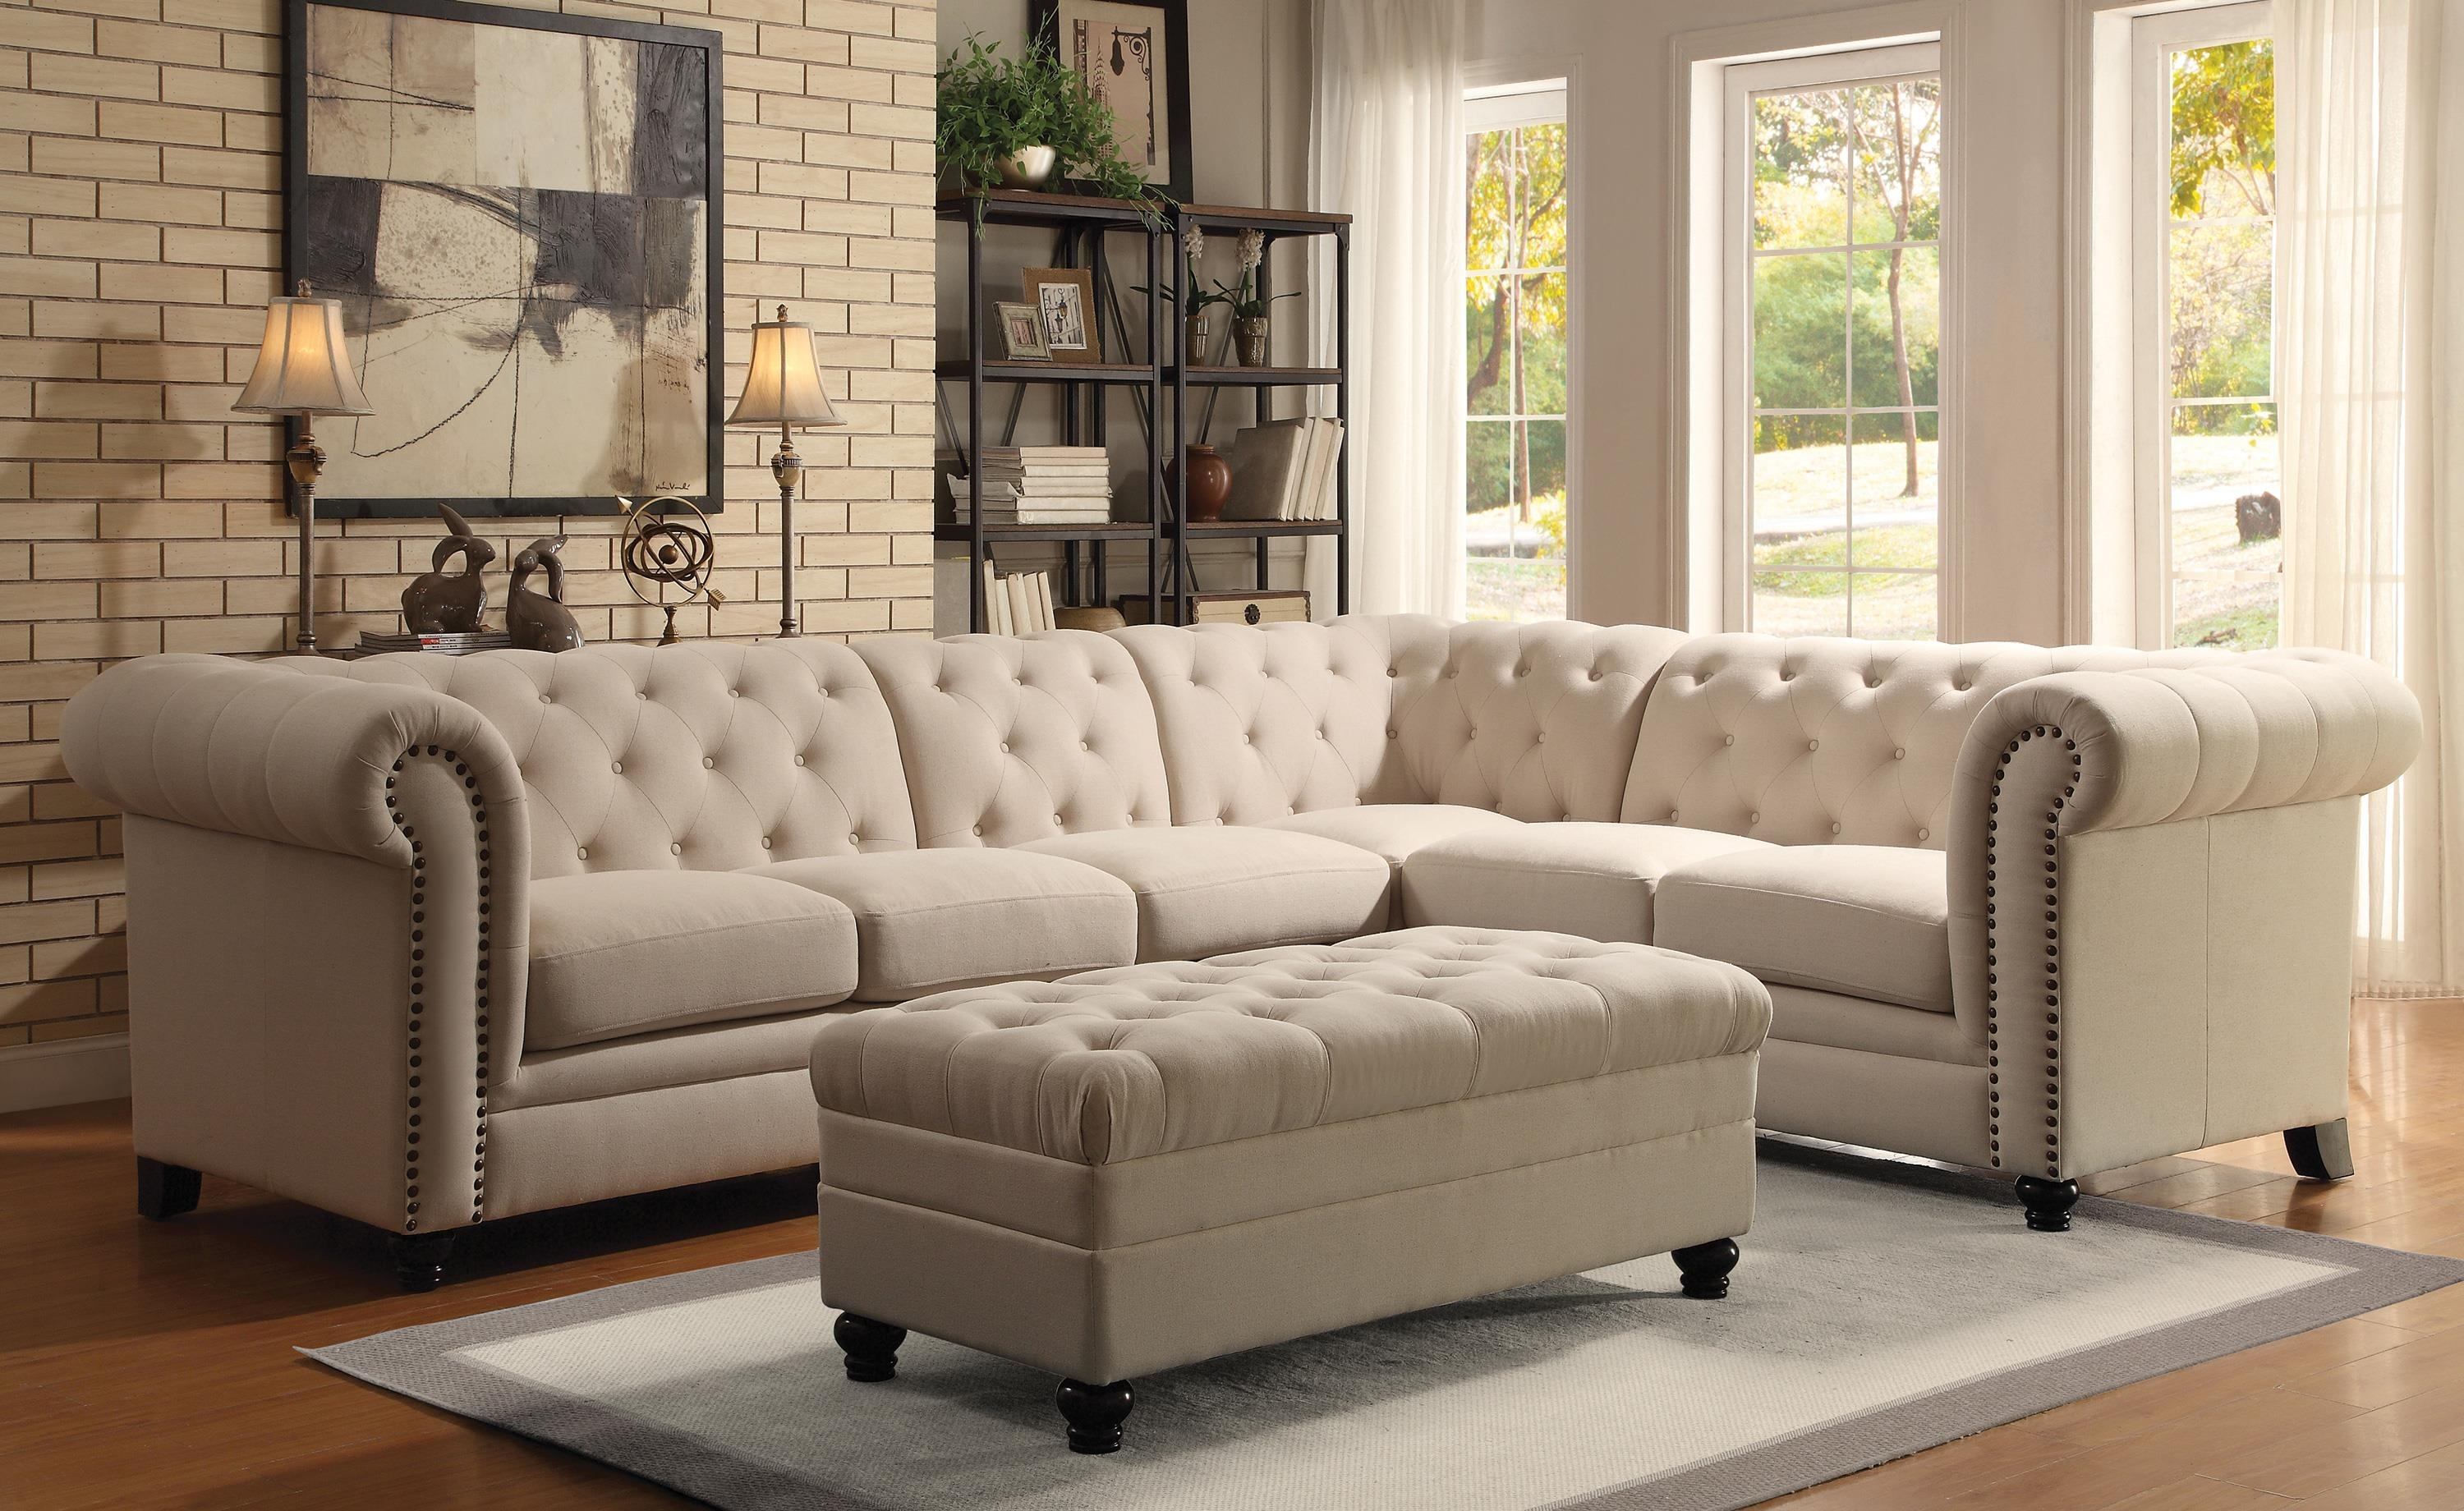 Button Tufted Sectional Sofa With Armless Chaircoaster | Wolf Intended For Lancaster Pa Sectional Sofas (View 10 of 10)